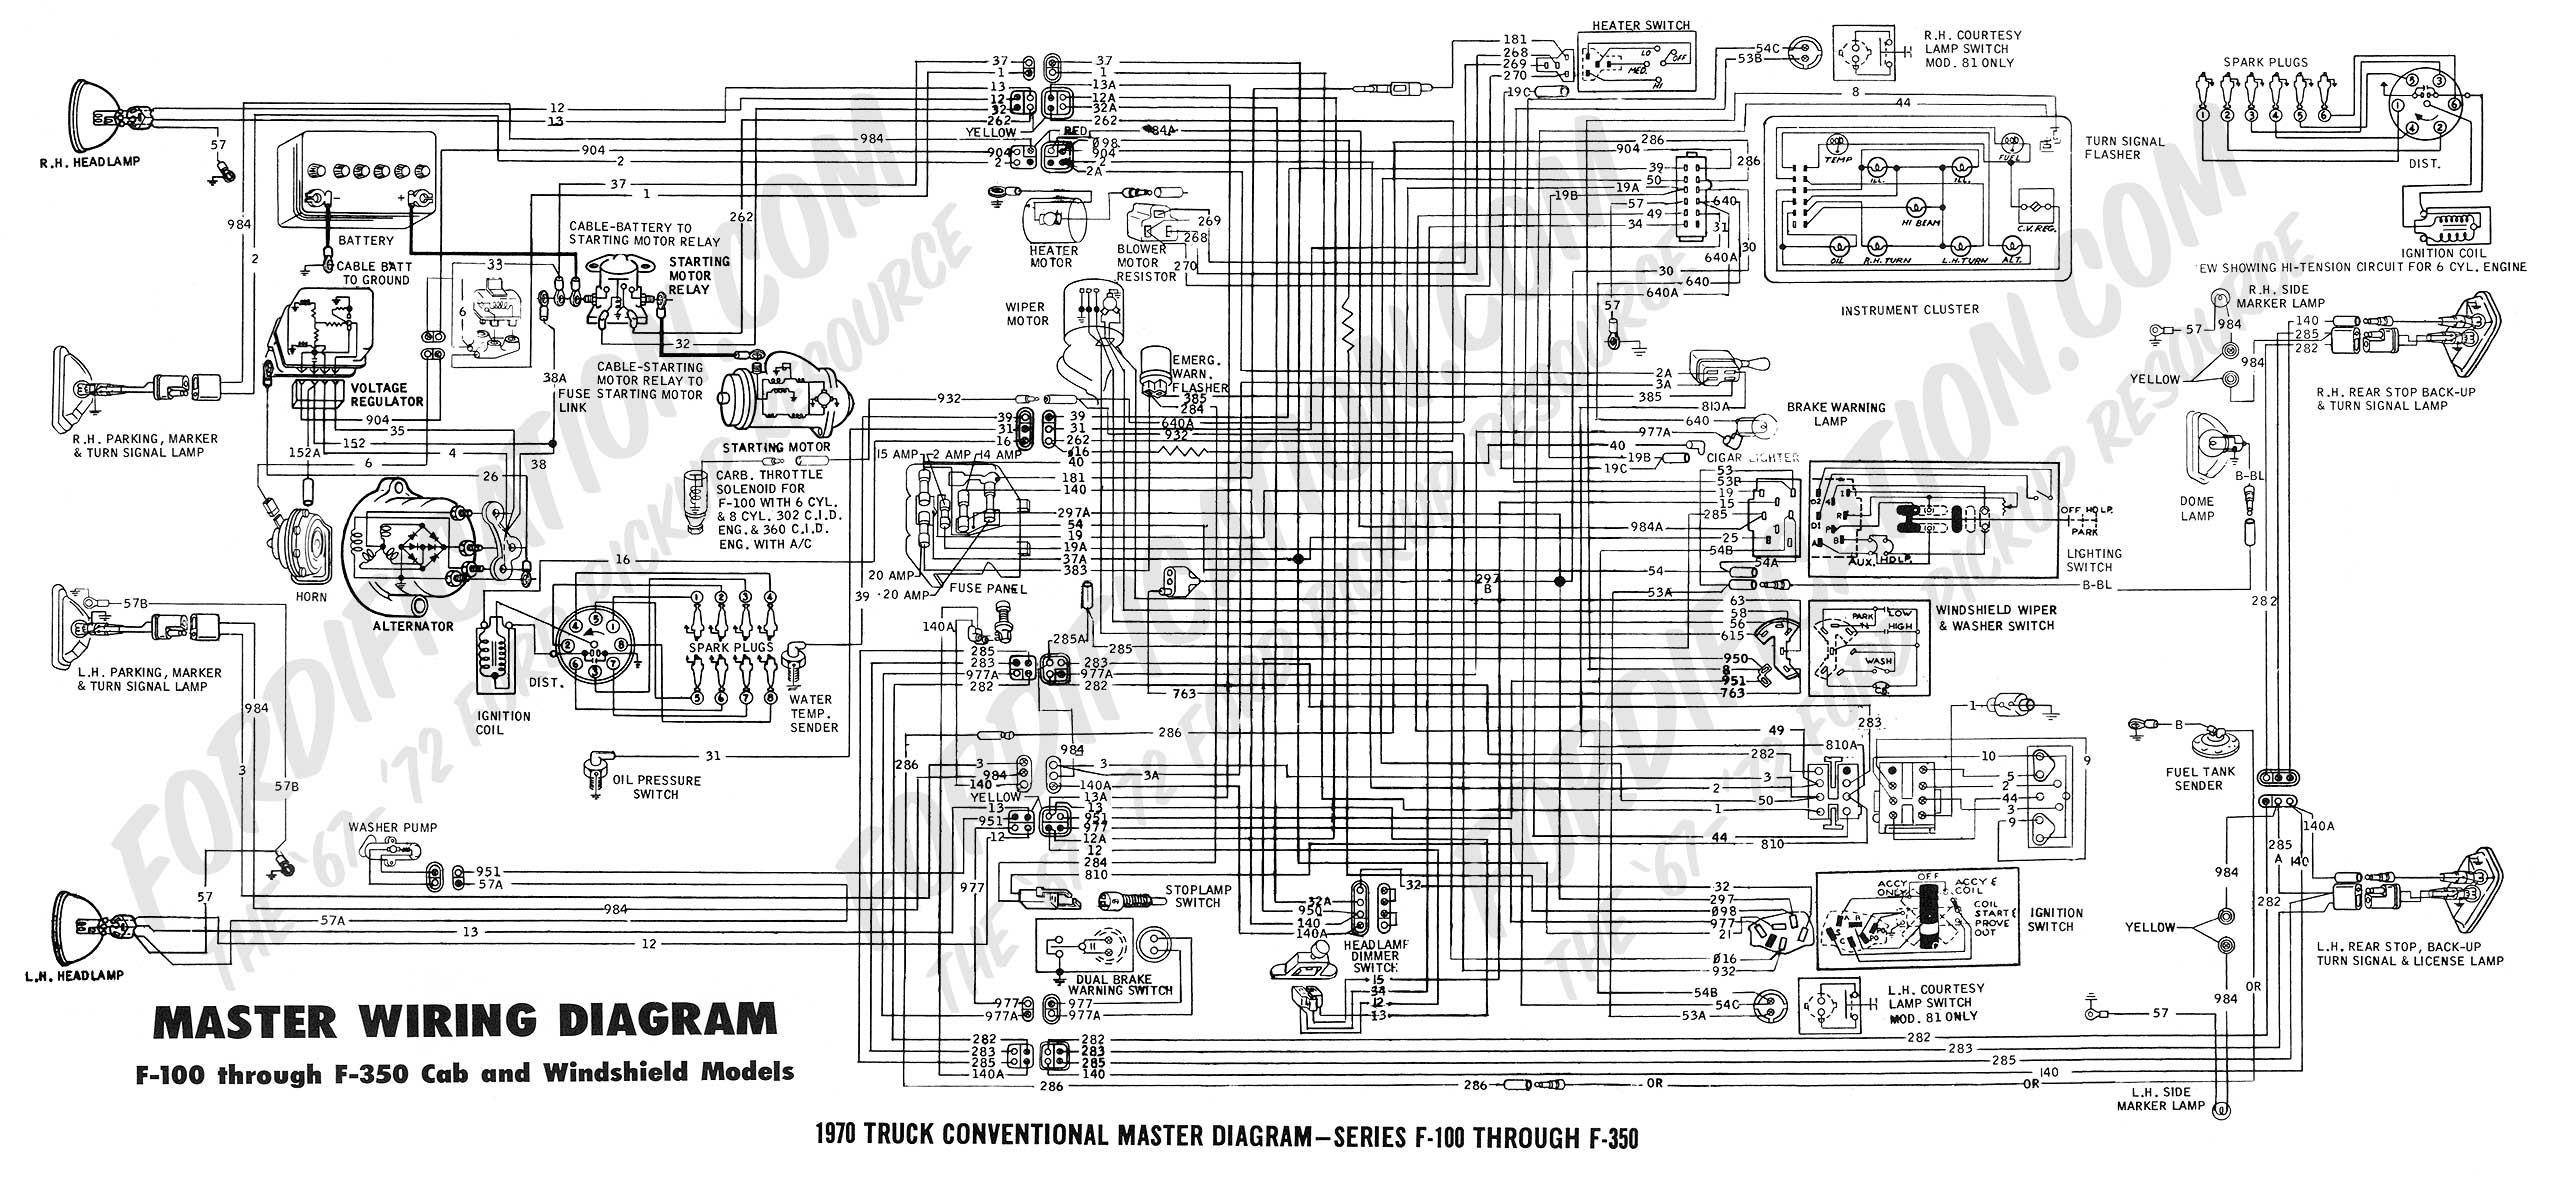 wiring diagram 70_master camper wiring diagram manual slide in camper wiring diagram starcraft camper wiring diagram at fashall.co